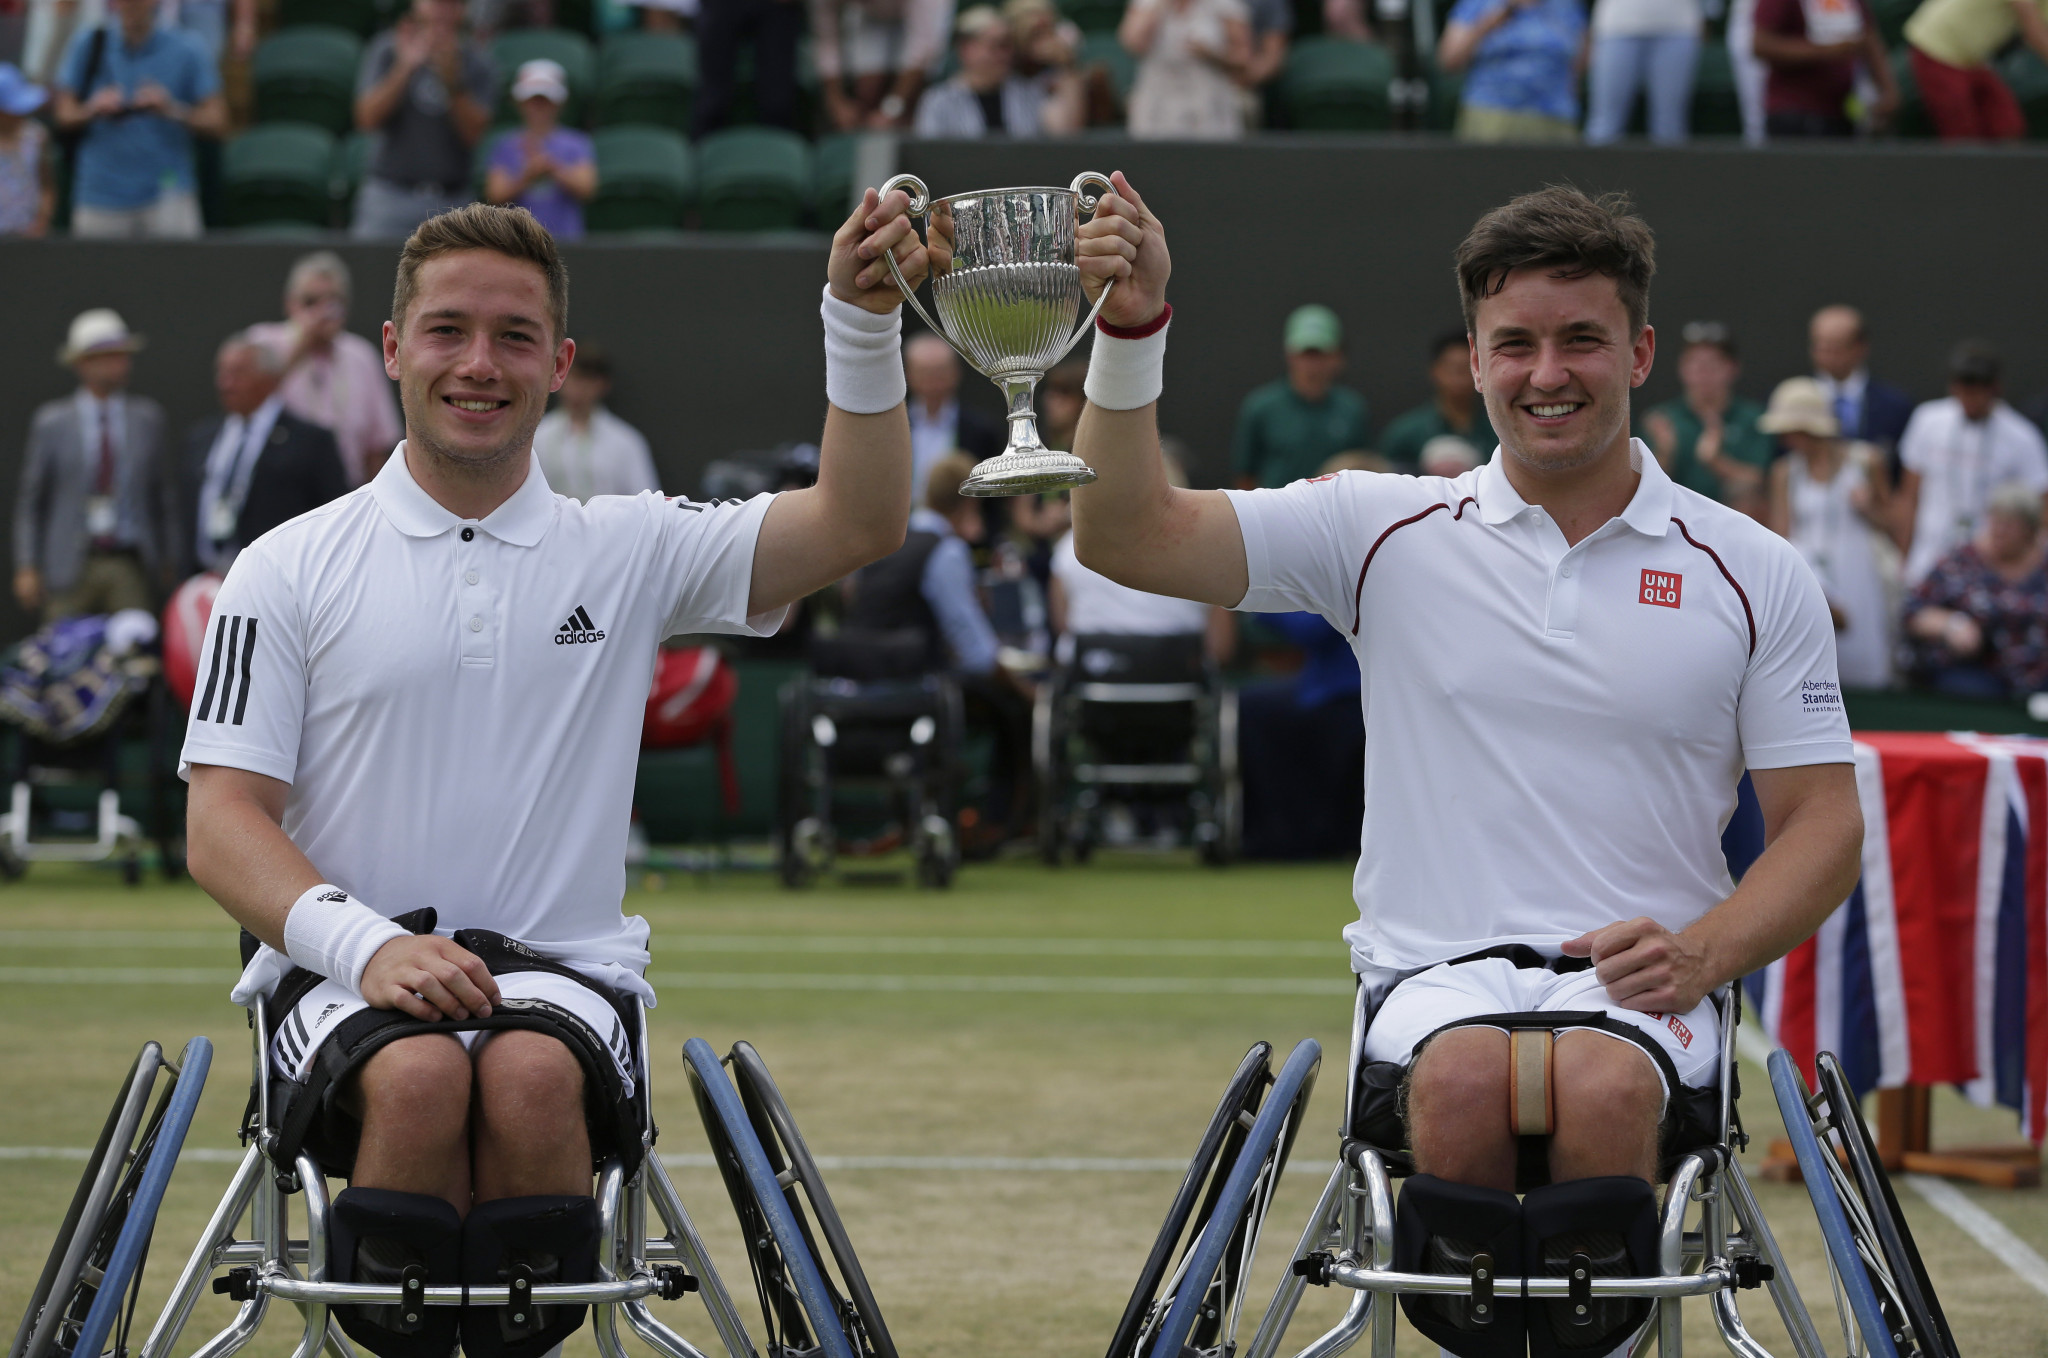 Gordon Reid and Alfie Hewett will compete in Nottingham having won their third Wimbledon title on Saturday ©Getty Images